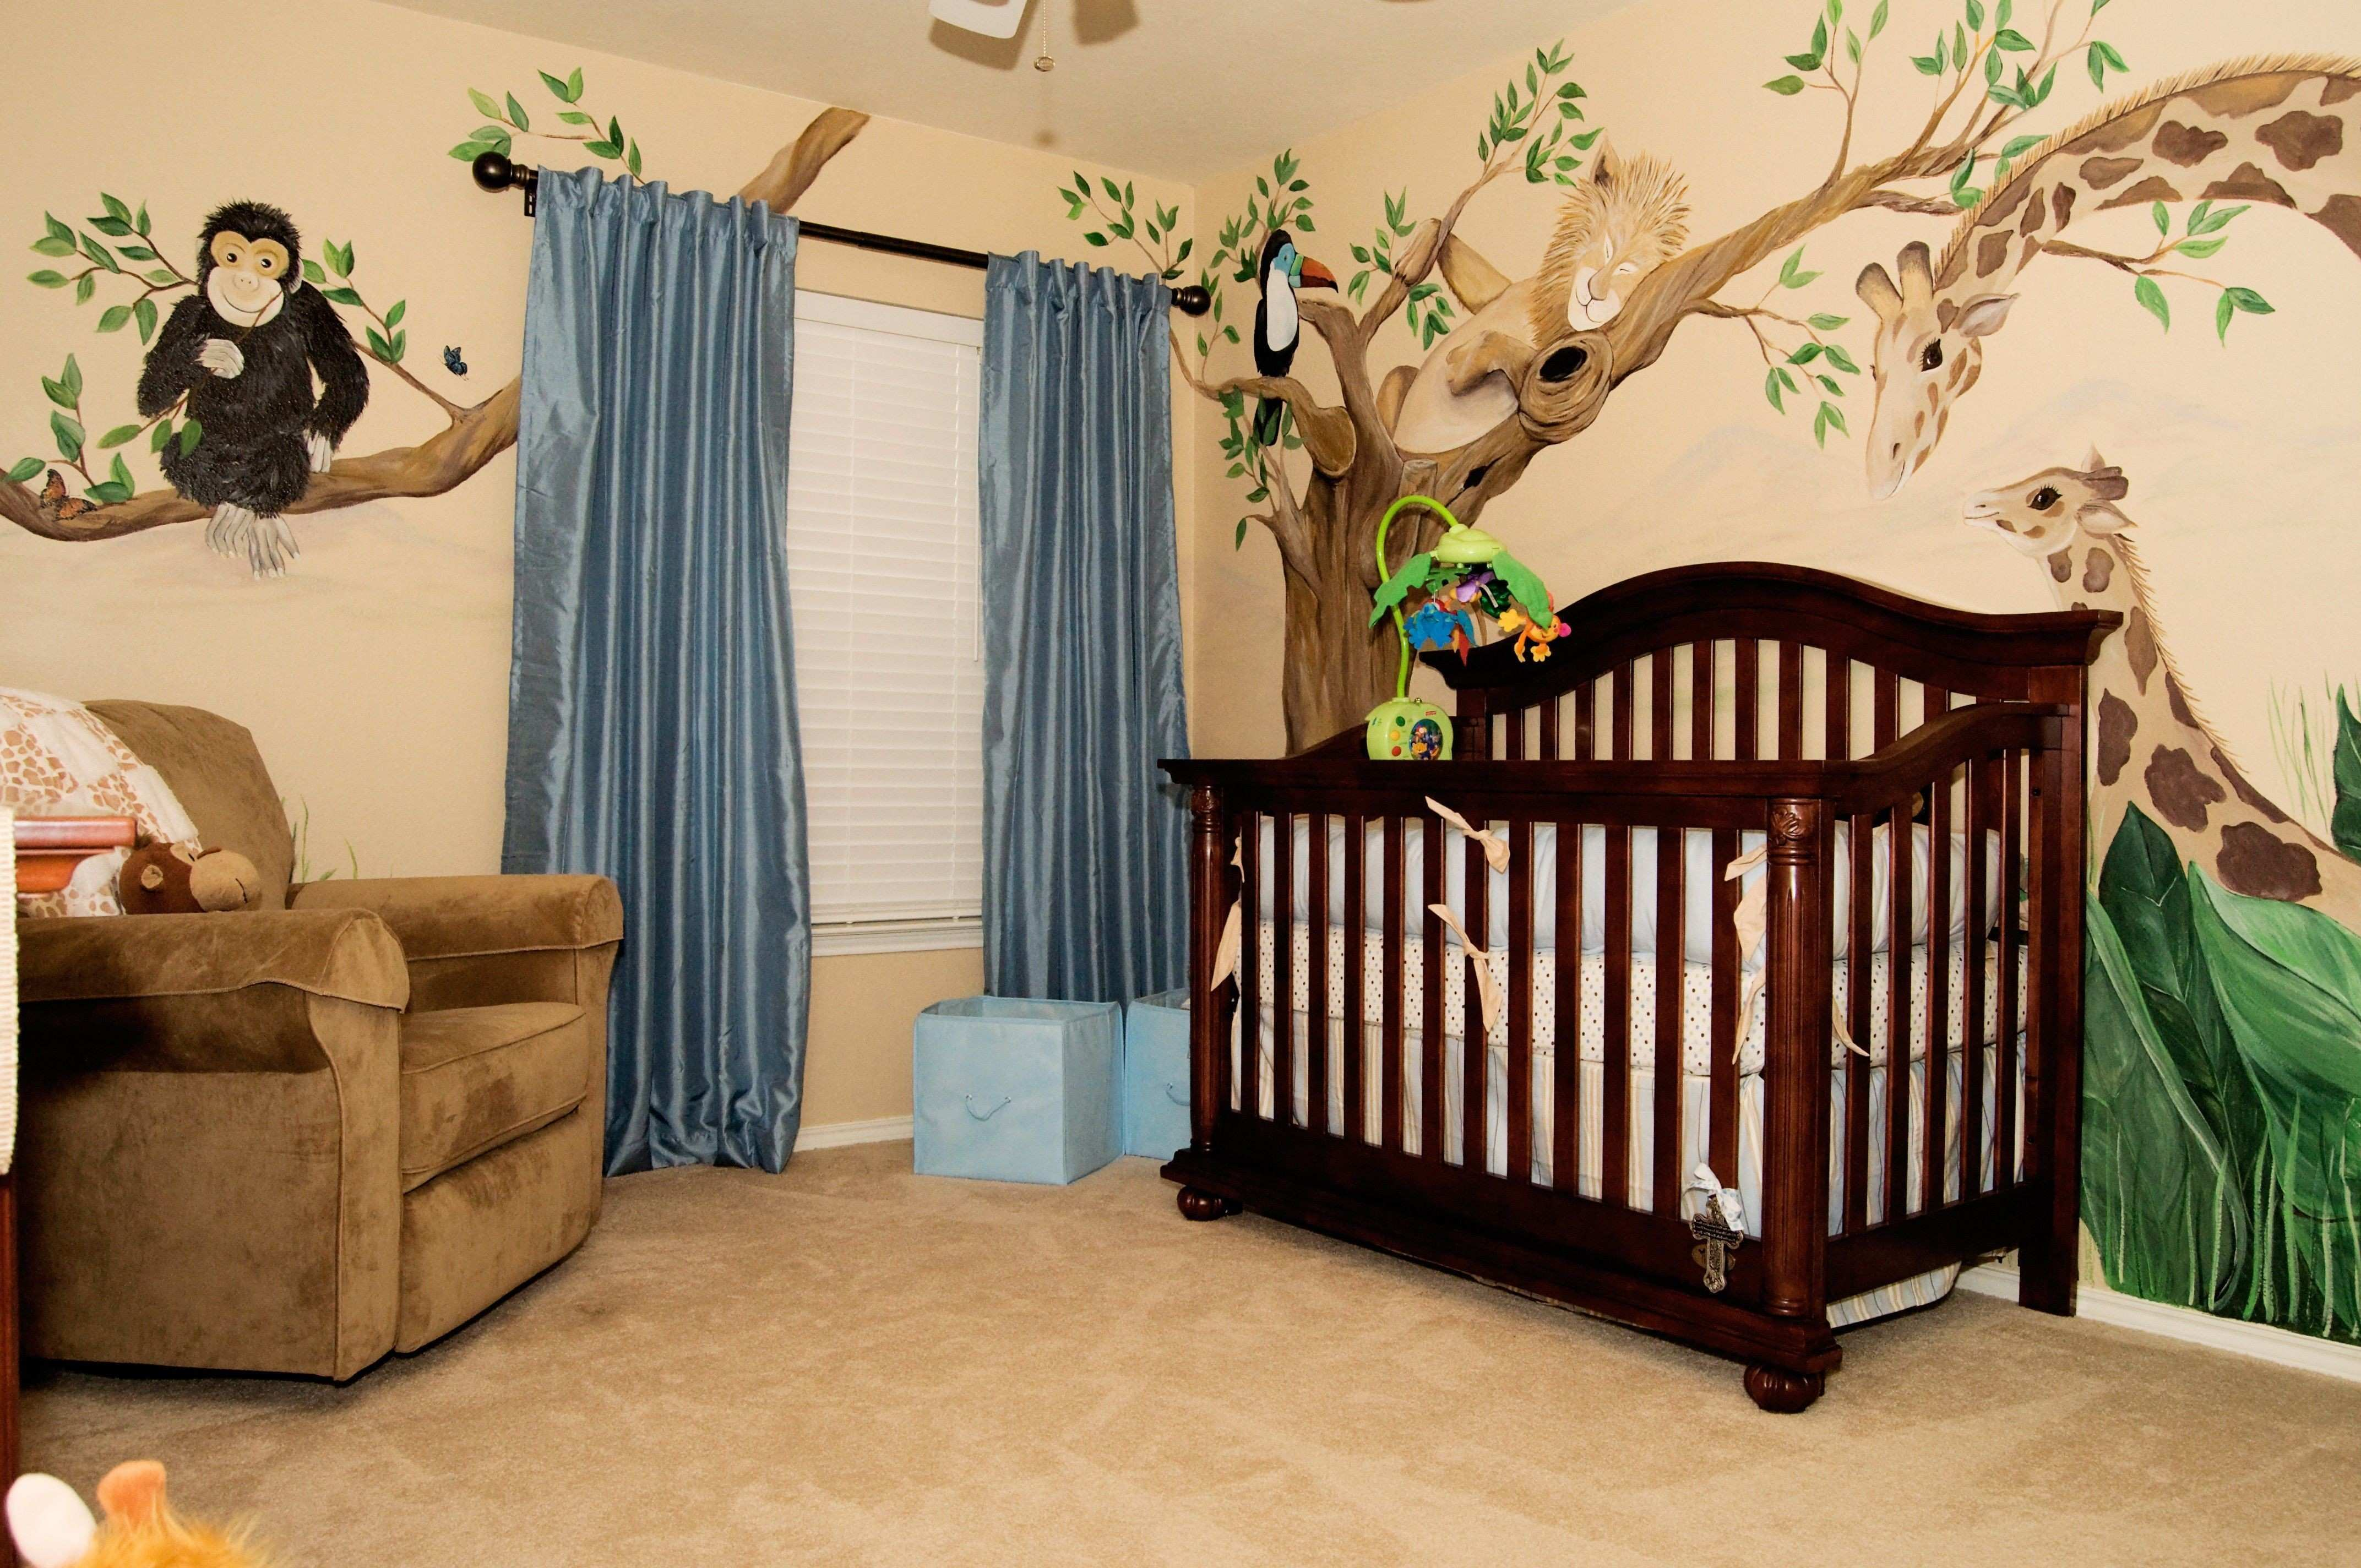 Best Jungle Decals for Baby Room